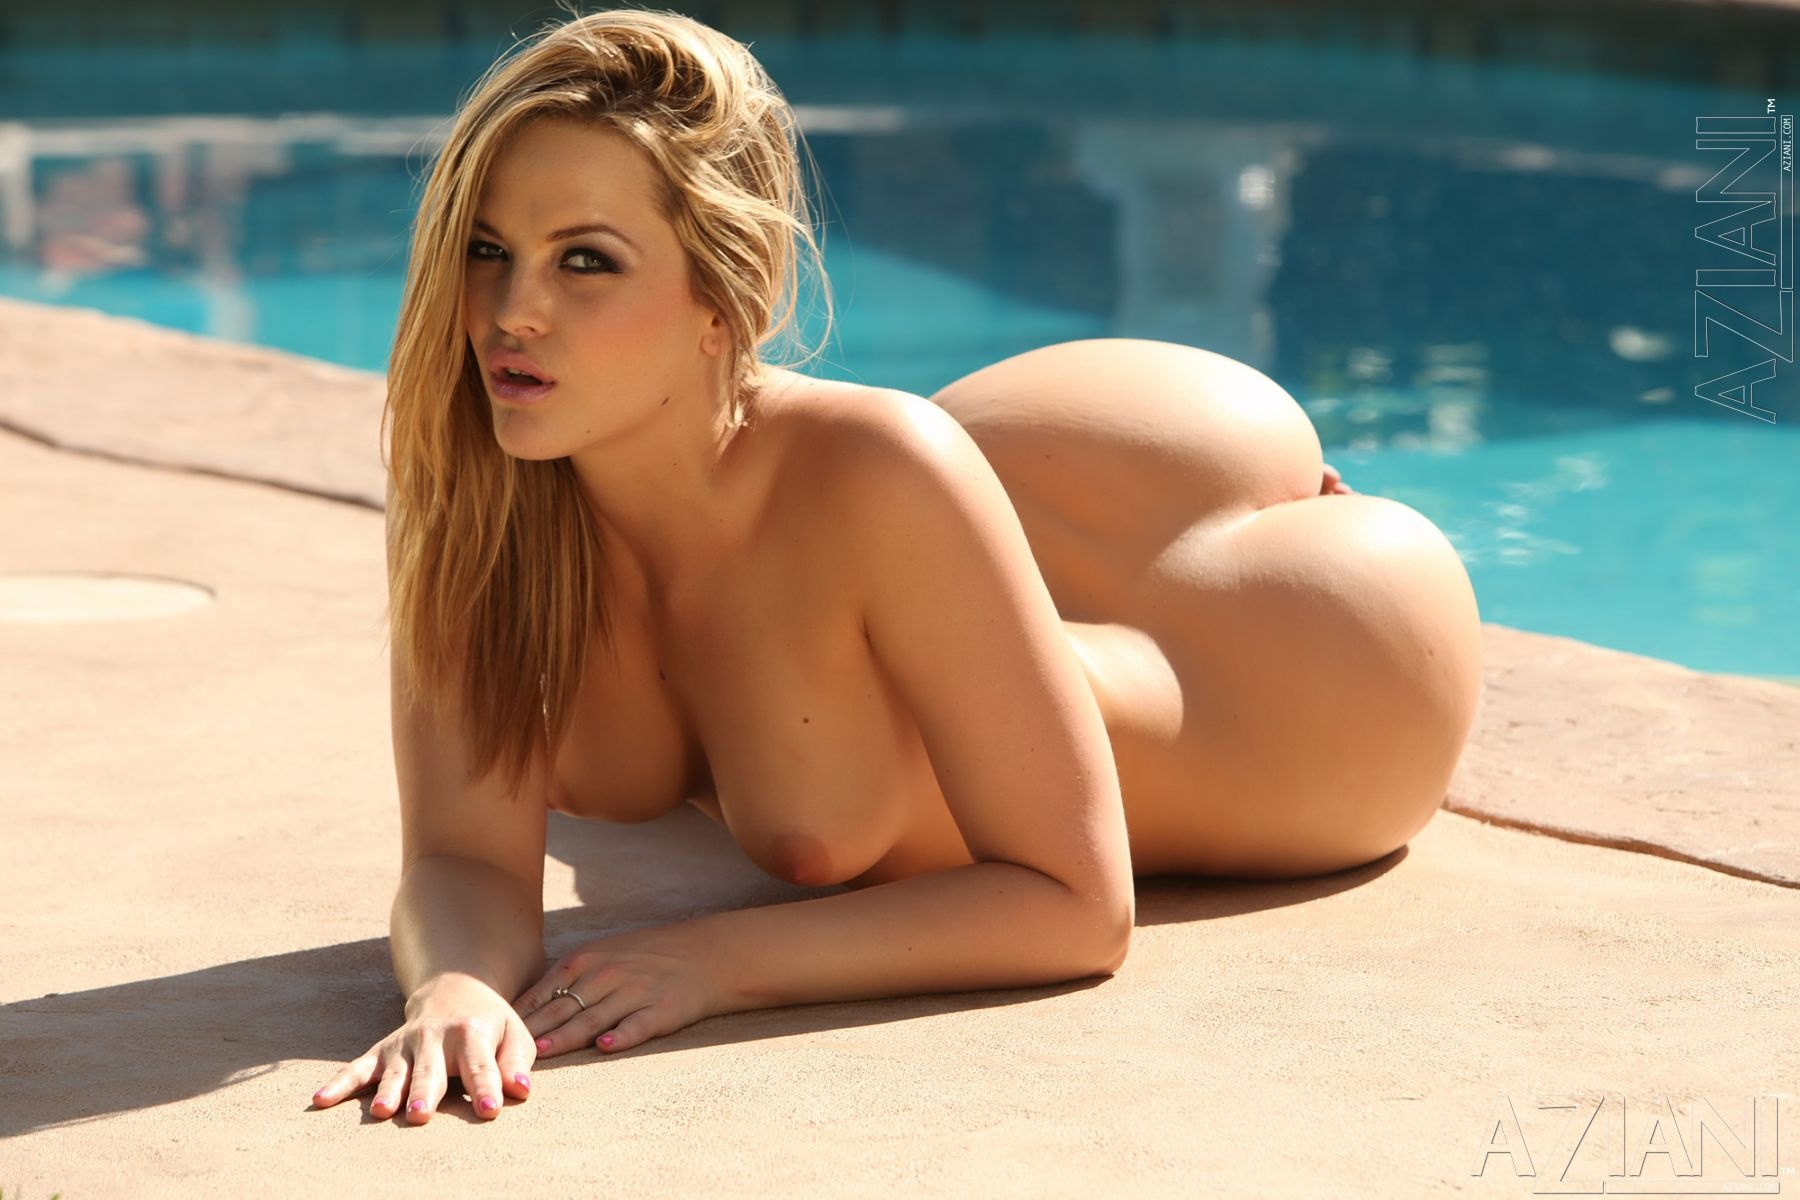 alexis texas wallpaper